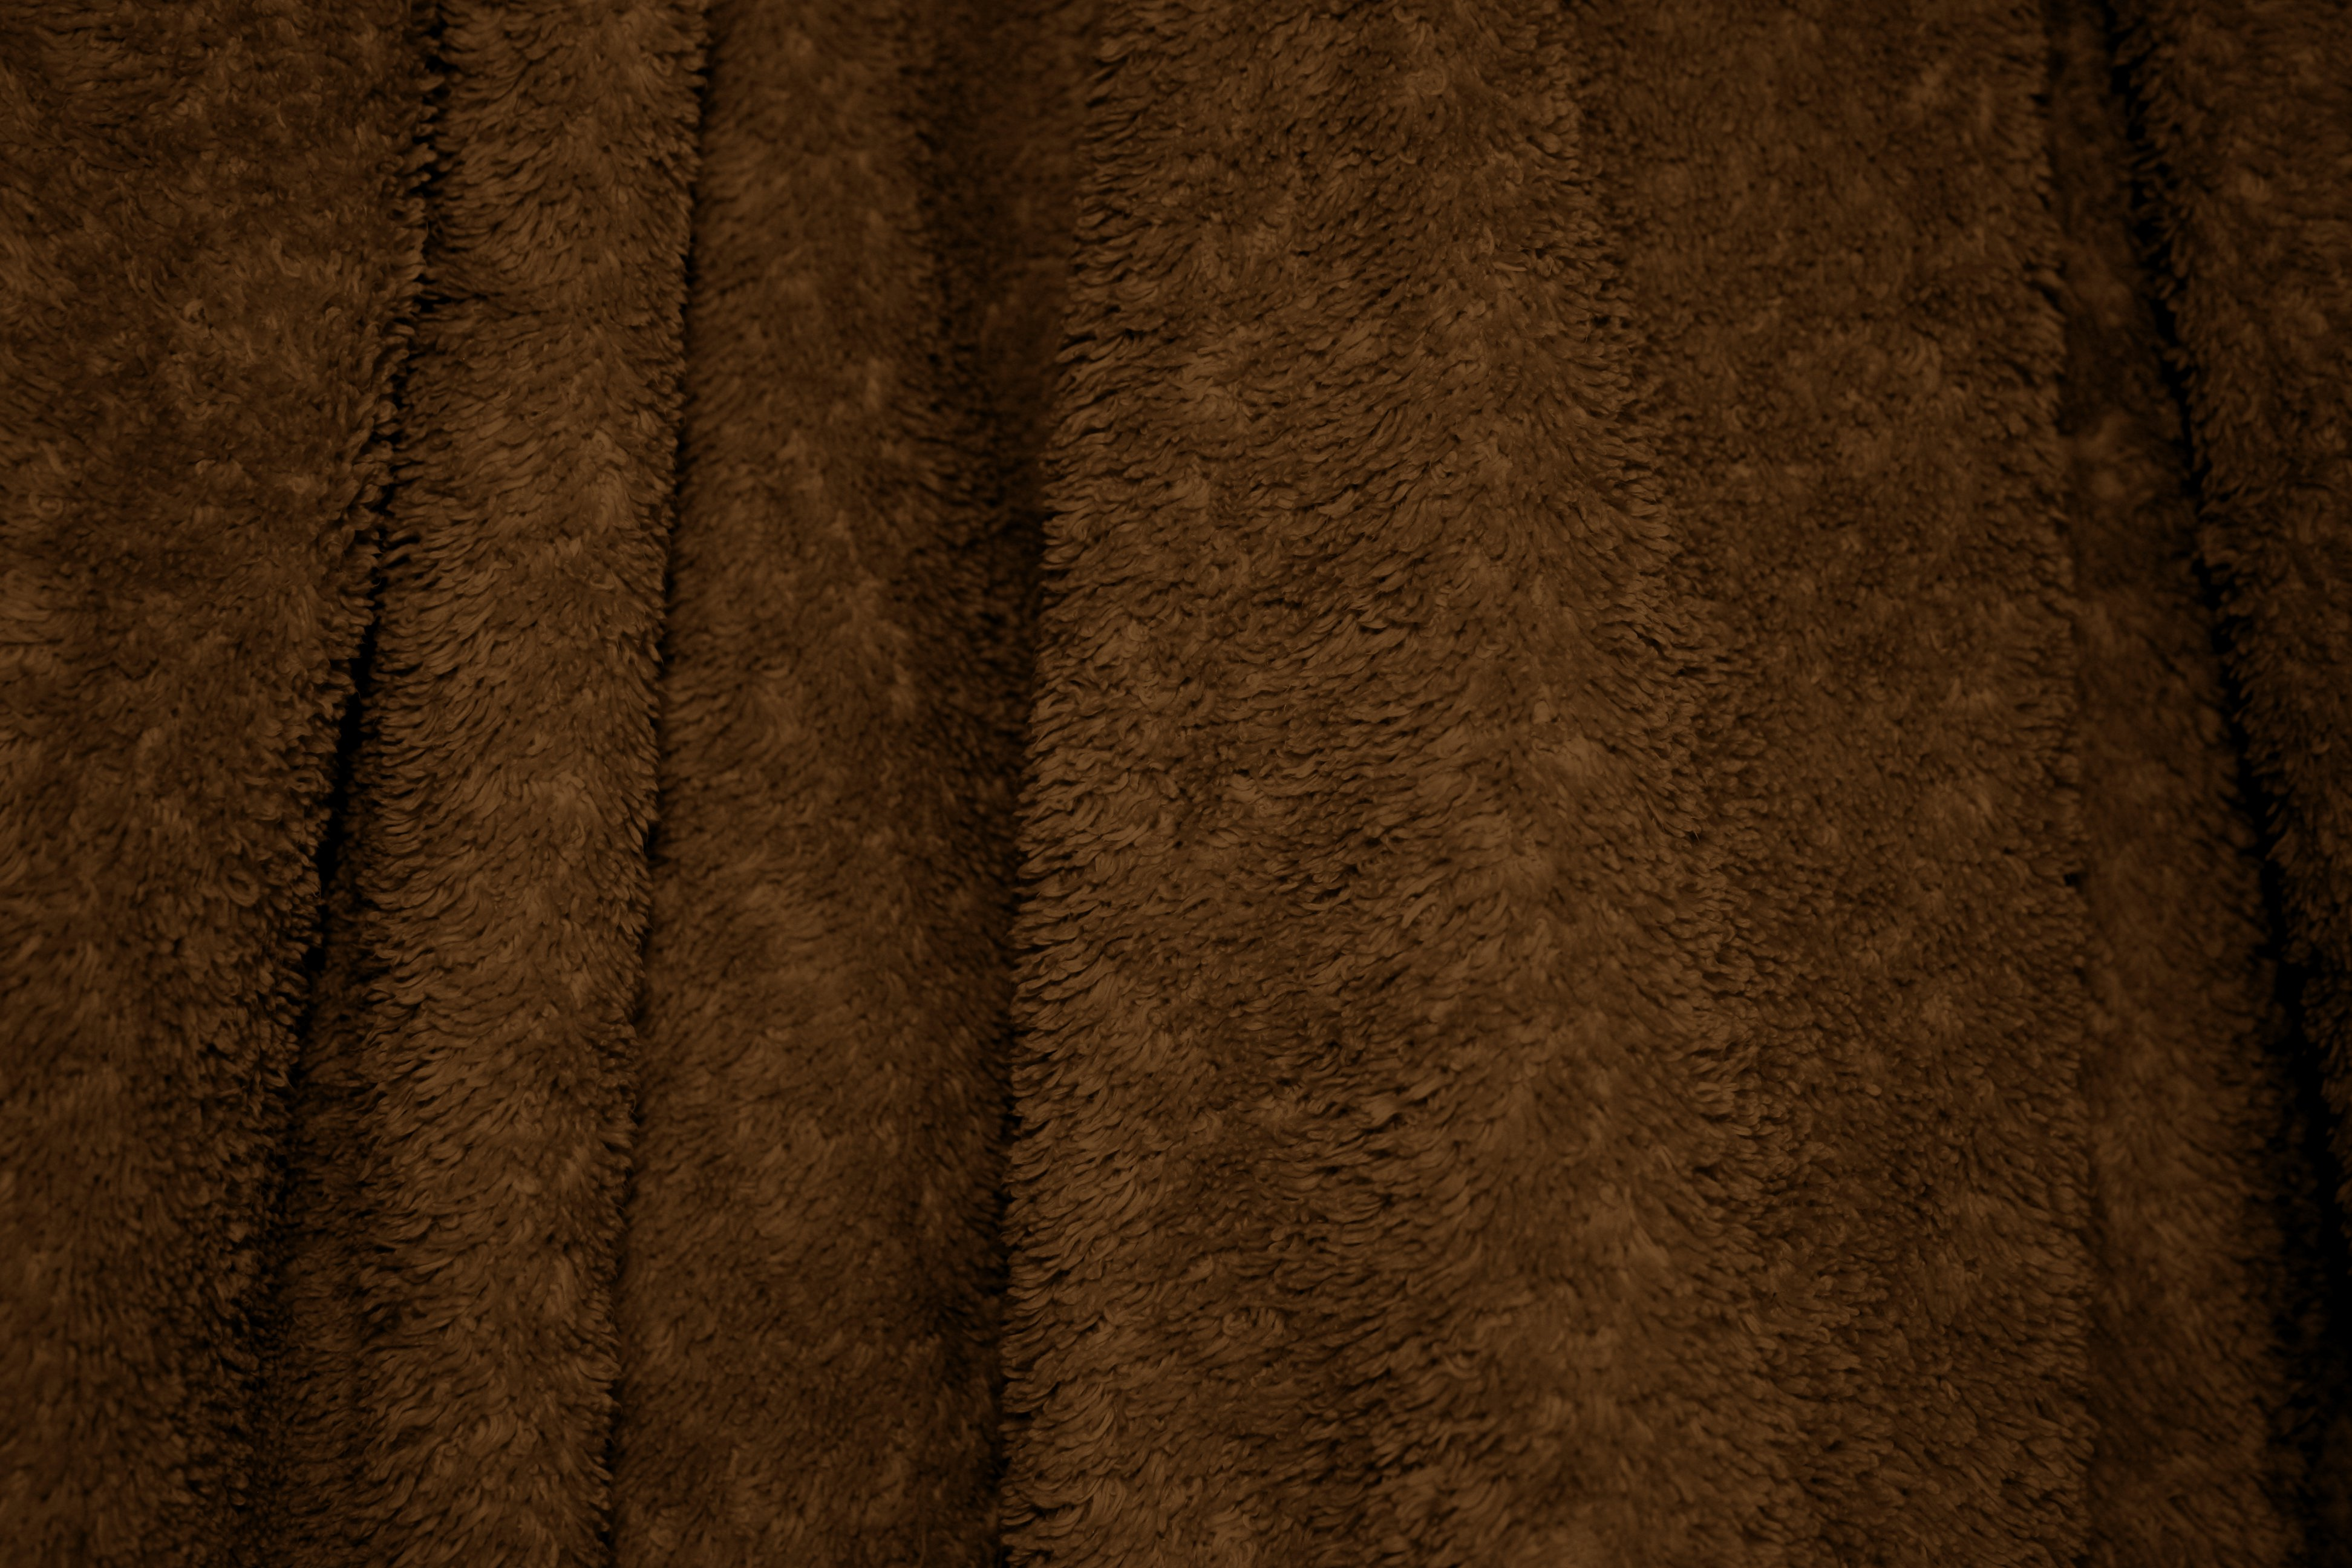 Chocolate Brown Terry Cloth Bath Towel Texture - Free High Resolution ...